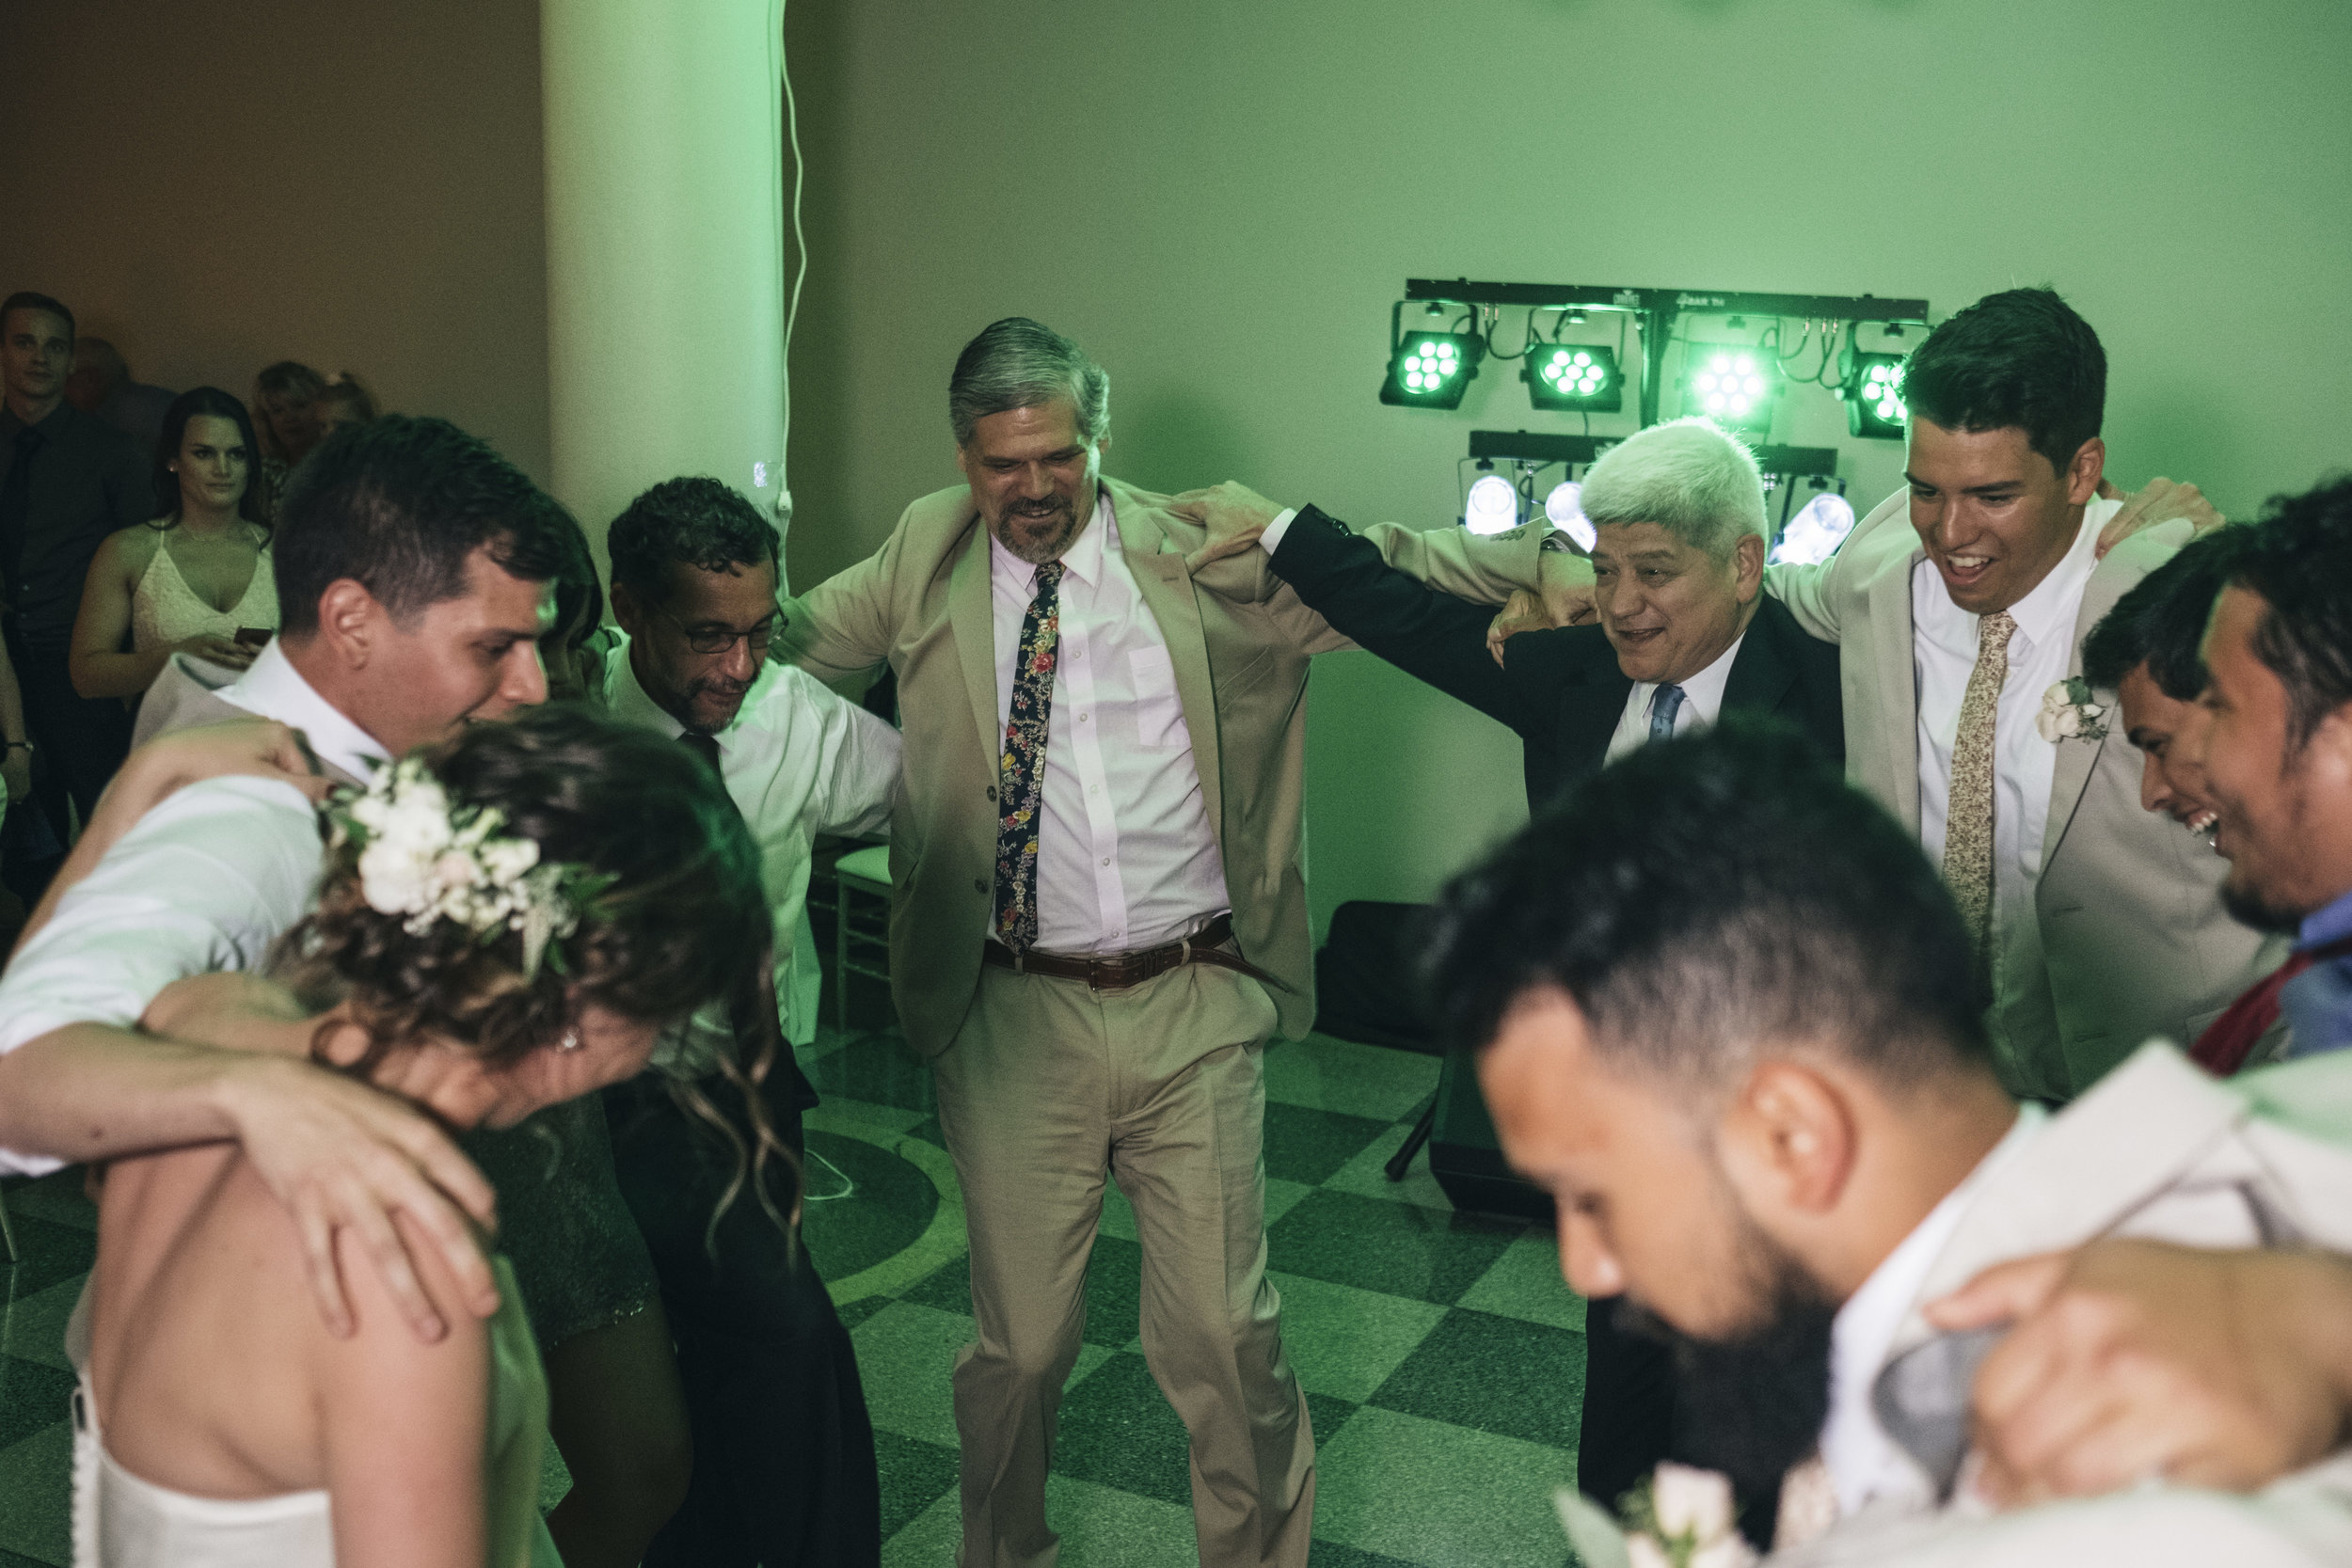 People dance at a wedding reception at Nazareth Hall.